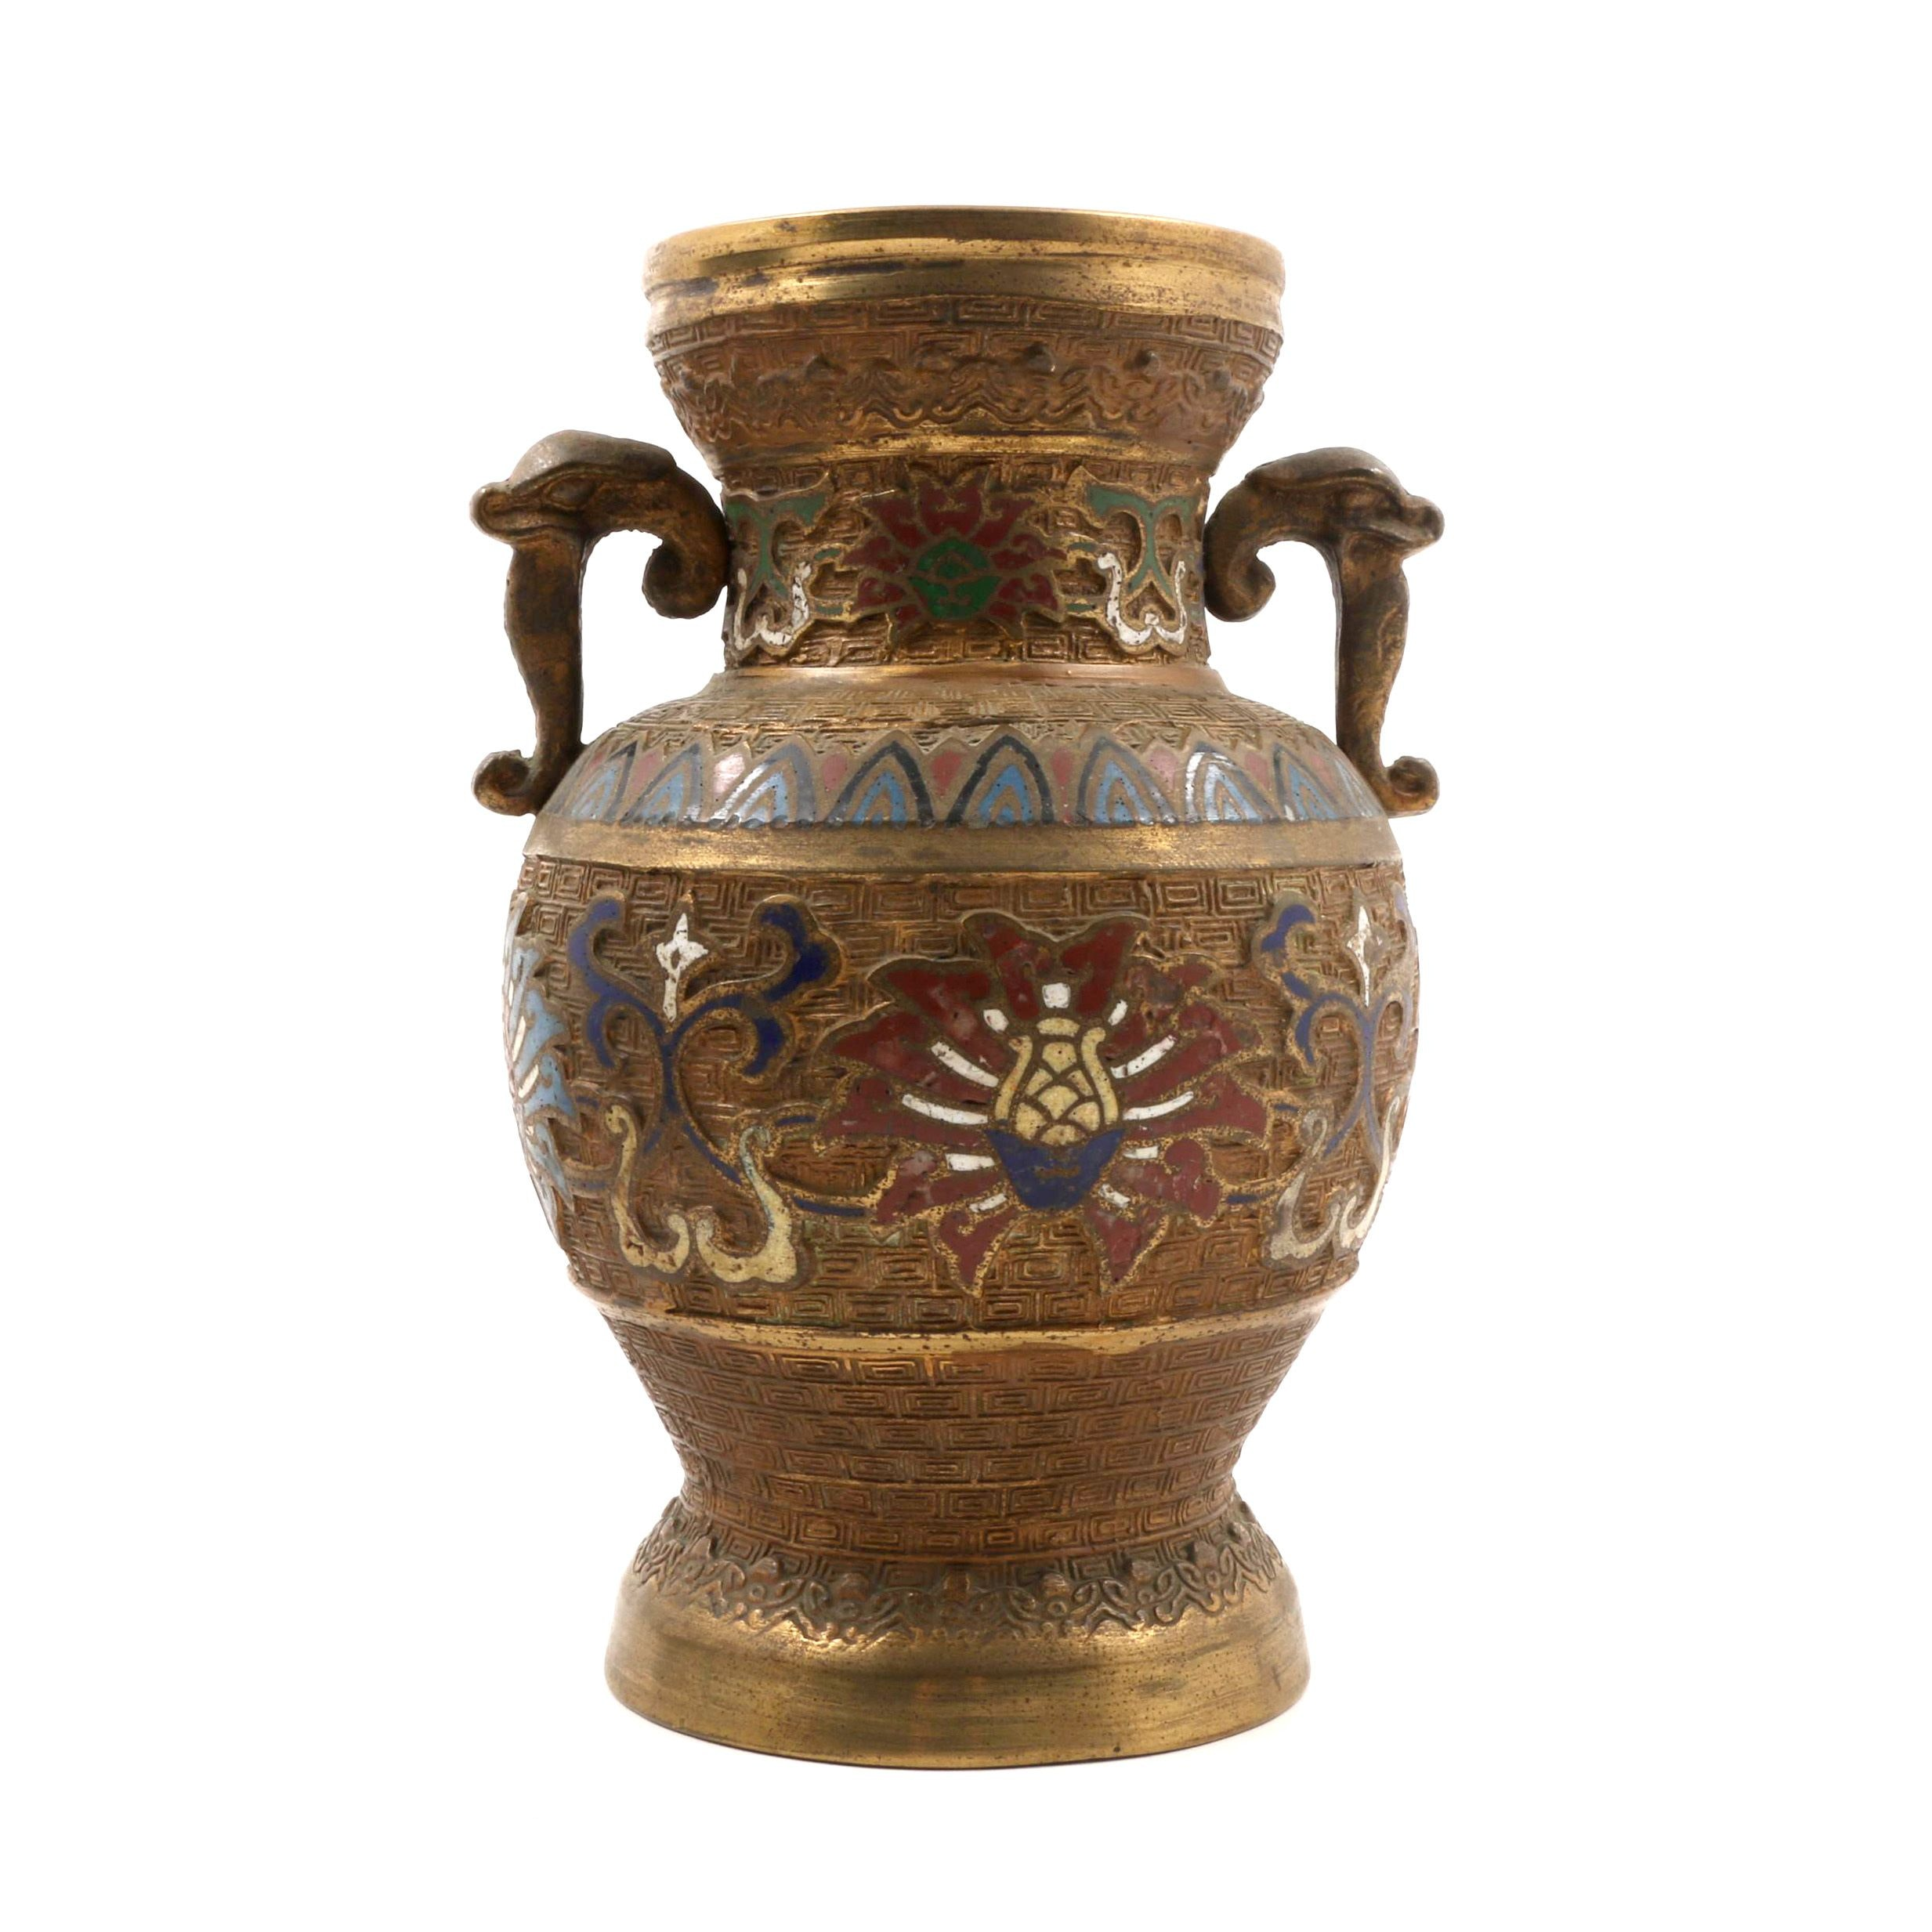 Asian Inspired Metal Vessel with Floral Inlay Patterns